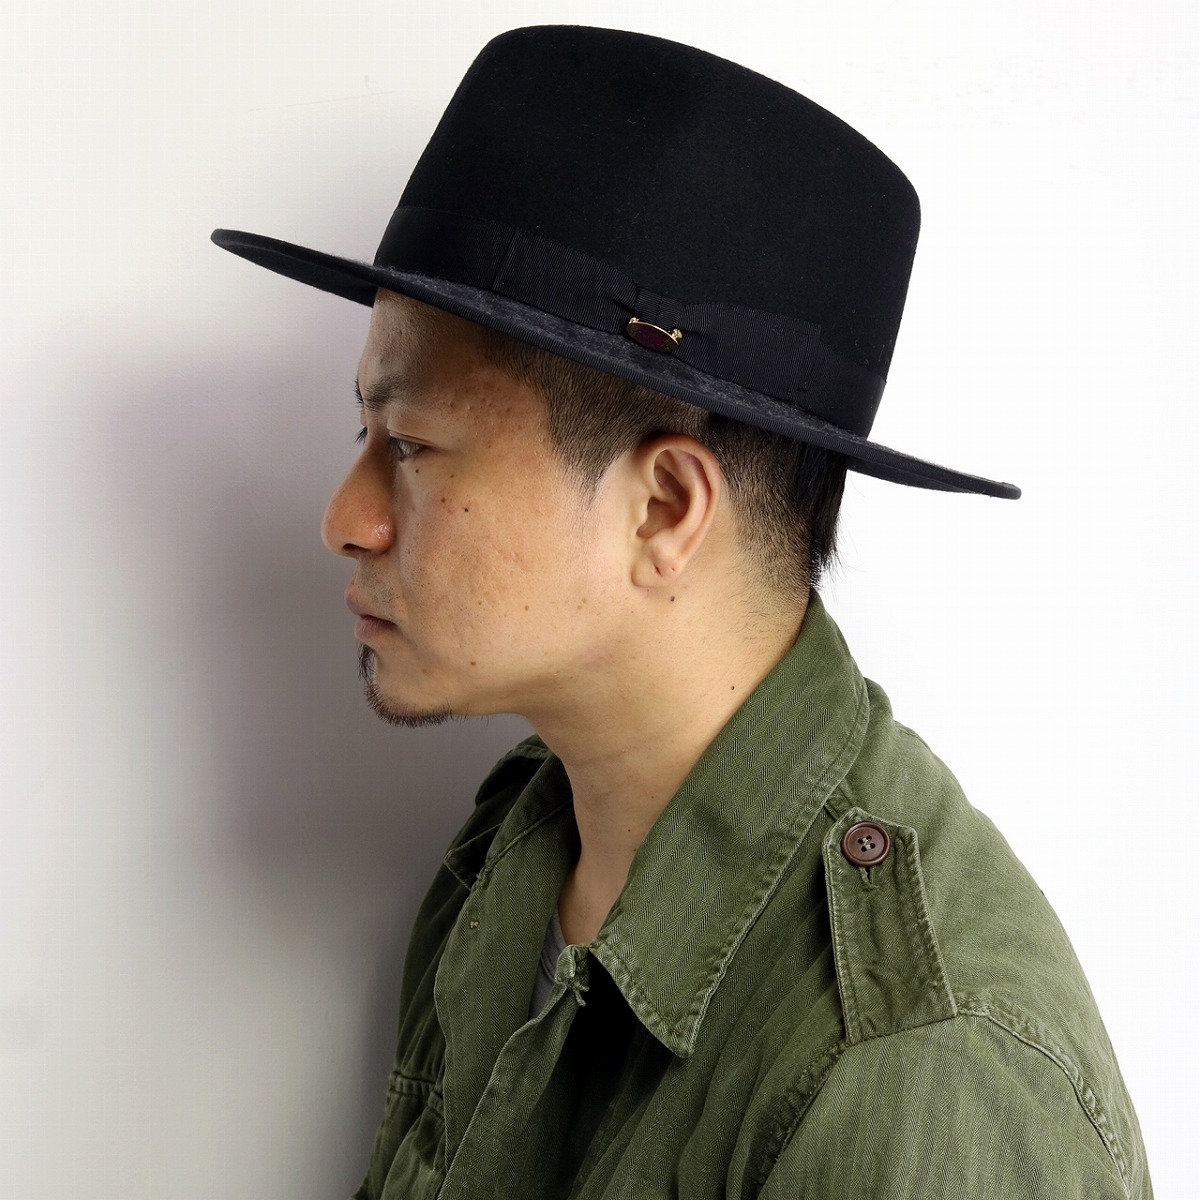 927677e2bd8 ... Stylish woolen Hat mens check pattern flat brim brim wide Hat men's  autumn/winter made ...